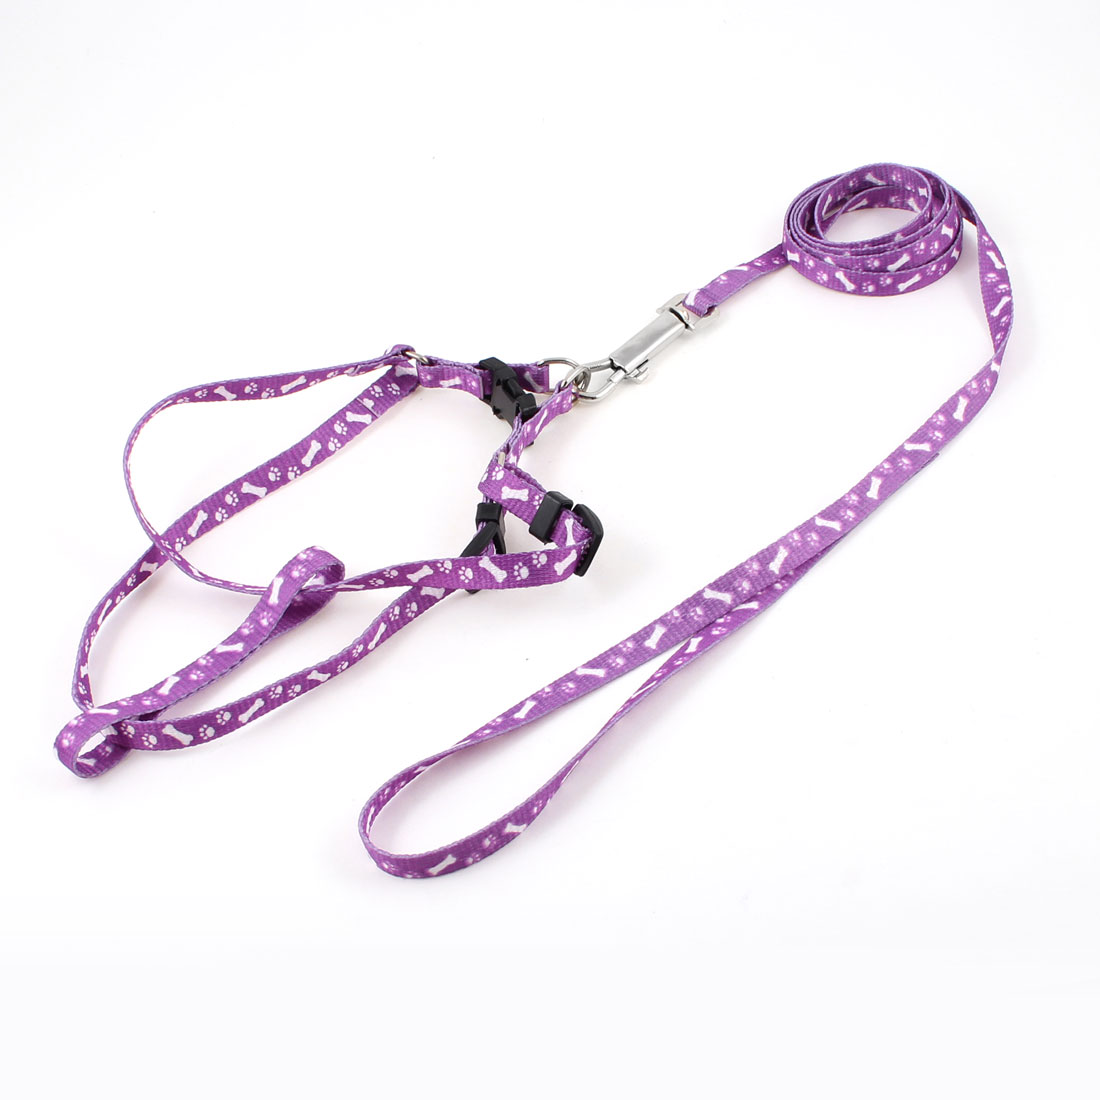 1.18M Lead Bone Print Doggie Dog Collar Halter Harness Leash Purple White